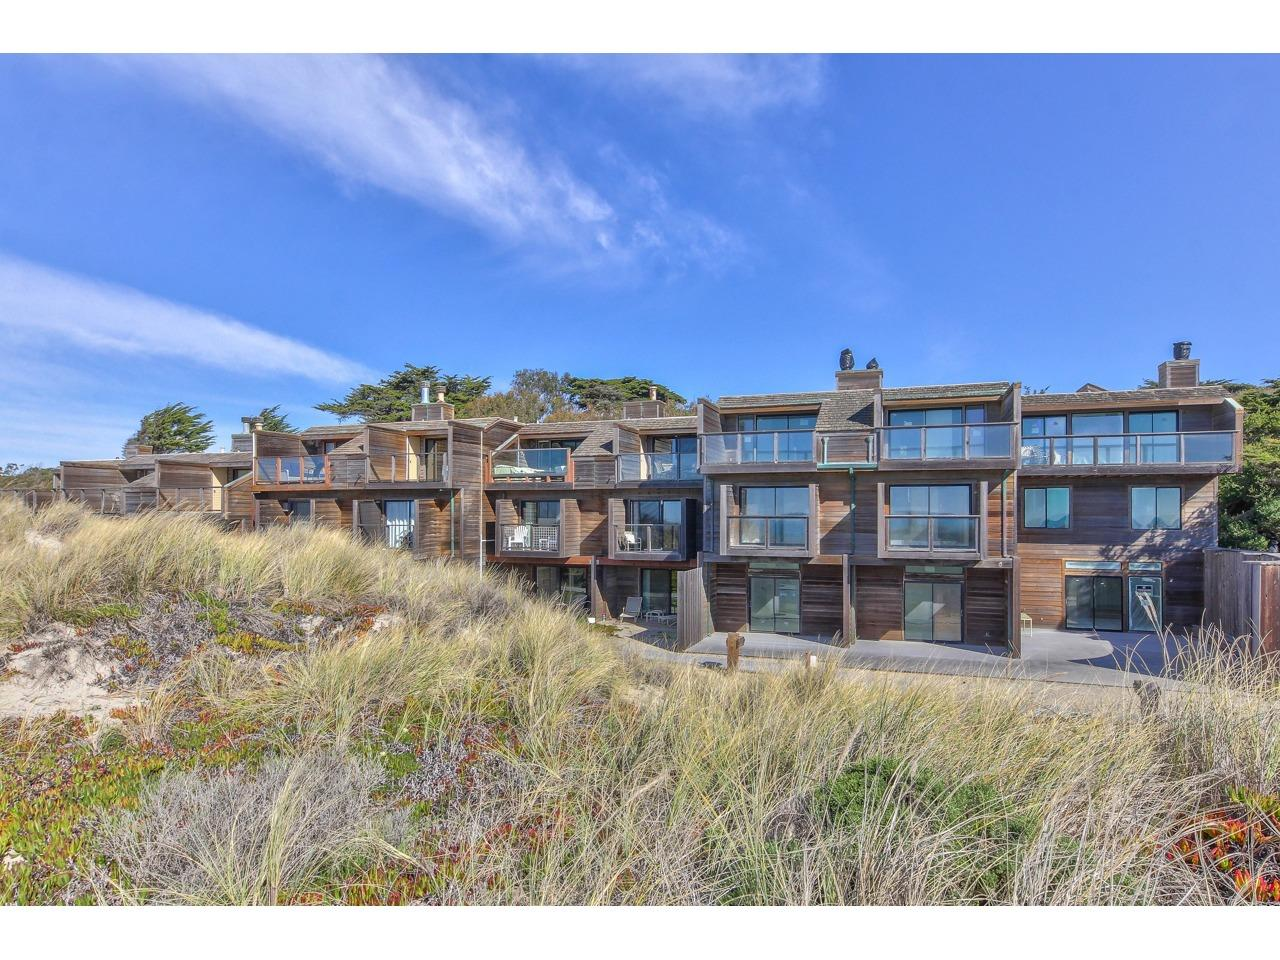 Beautiful Oceanfront Townhouse with Spectacular Views!  This spacious 3 story townhouse is in the coveted Pajaro Dunes Community and is just steps to the beach. There are 4 large bedrooms, each with their own full bathroom and private deck or patio. The main living area on the top floor features an open concept floor plan with a bright open kitchen, breakfast bar, dining area, large living room with a wood burning fireplace, wet bar, and a fantastic view deck to take in the 180 degree views of the entire Monterey Bay!  There are beautiful hardwood floors throughout, a stacked washer & dryer, and a private front patio for BBQ's and outdoor dining. Pajaro Dunes is a gated beachfront community along a gorgeous section of pristine coastline between Santa Cruz and Monterey, featuring tennis courts, walking trails, beautiful natural landscaping, and fantastic beaches! This wonderful vacation home is being sold fully furnished and ready to move right in and enjoy life at the beach!